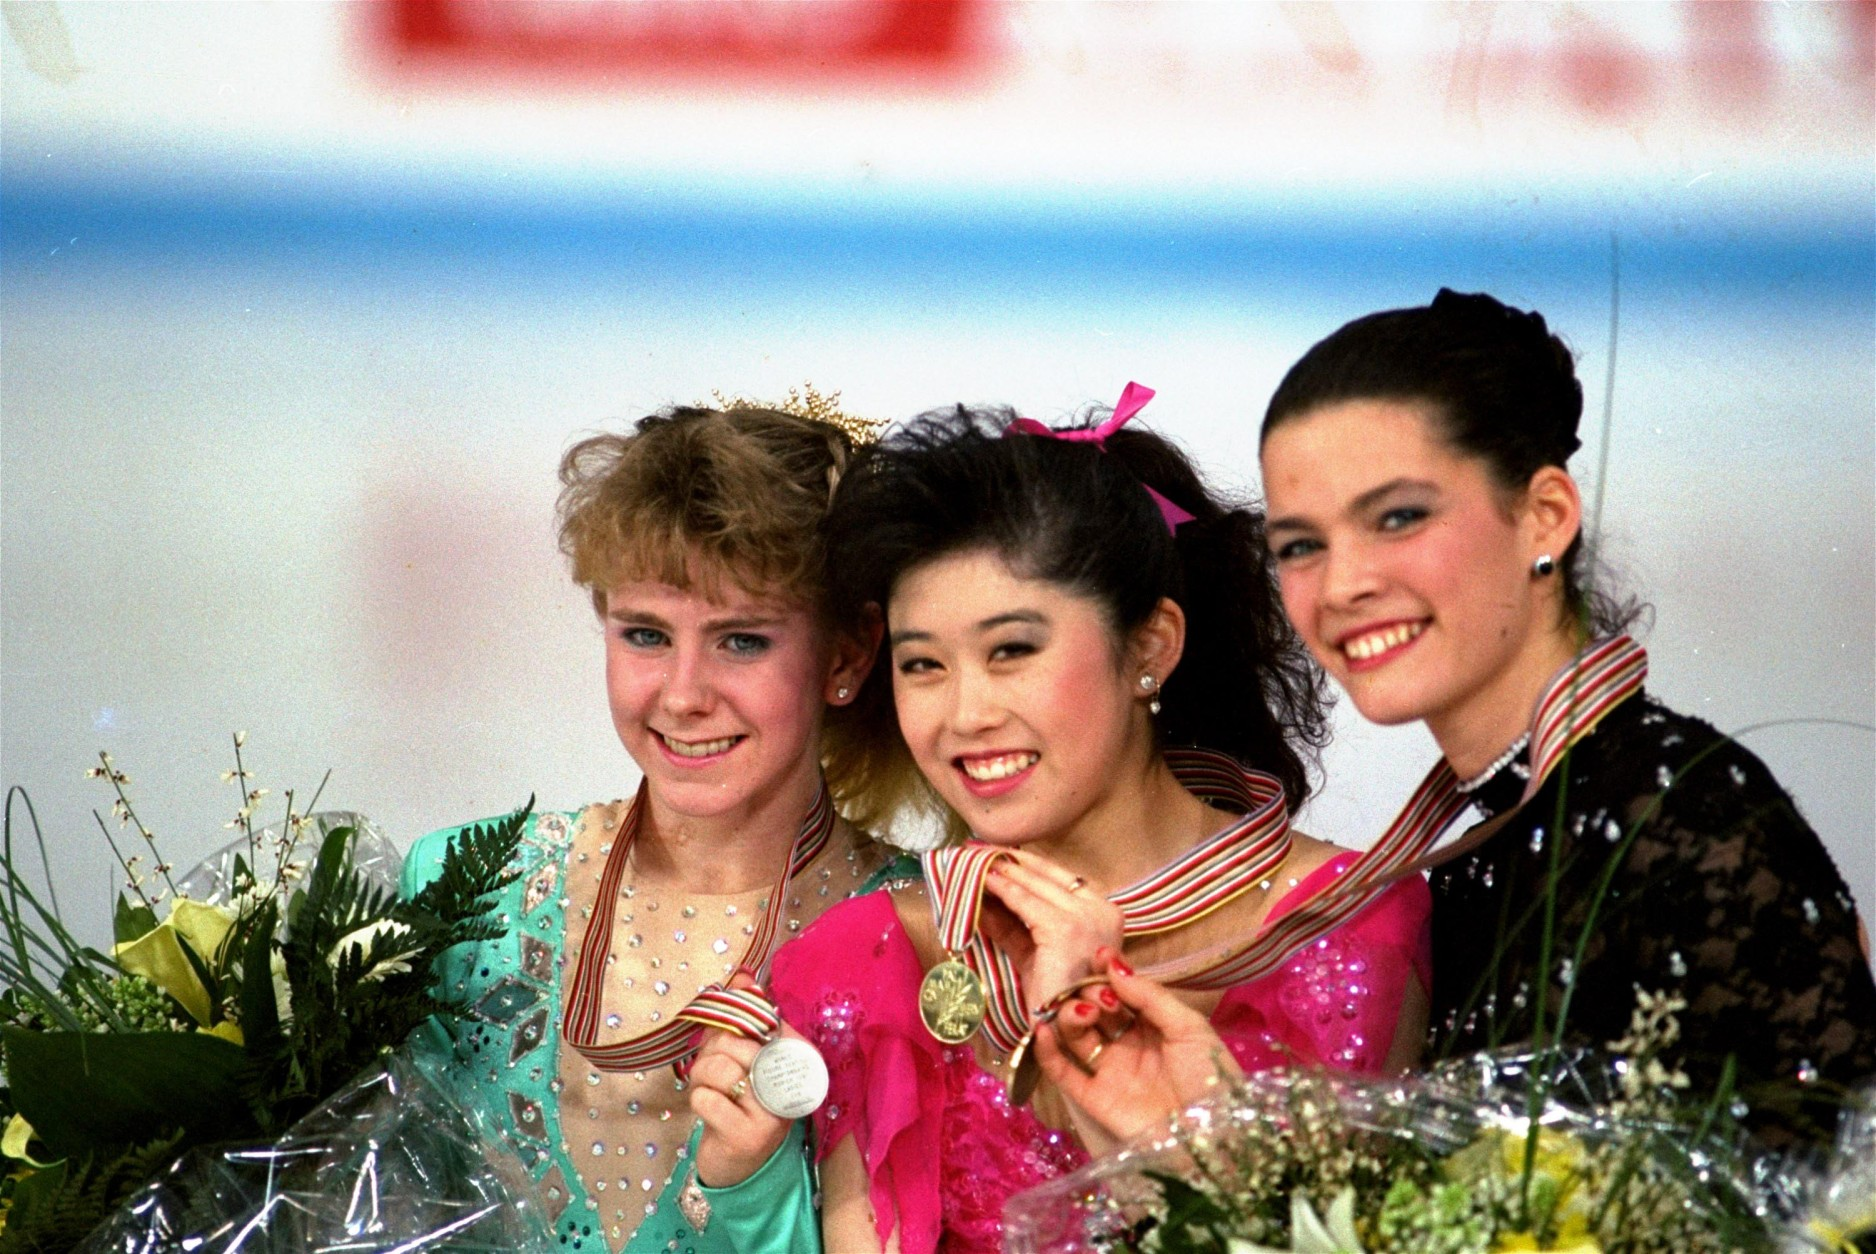 American skaters (L to R) Tonya Harding, silver; Kristi Yamaguchi, gold; and Nancy Kerrigan, bronze, display their medals after the finals of the World Figure Skating Championships in Munich, Saturday, March 12, 1991. (AP Photo/Diether Endlicher)